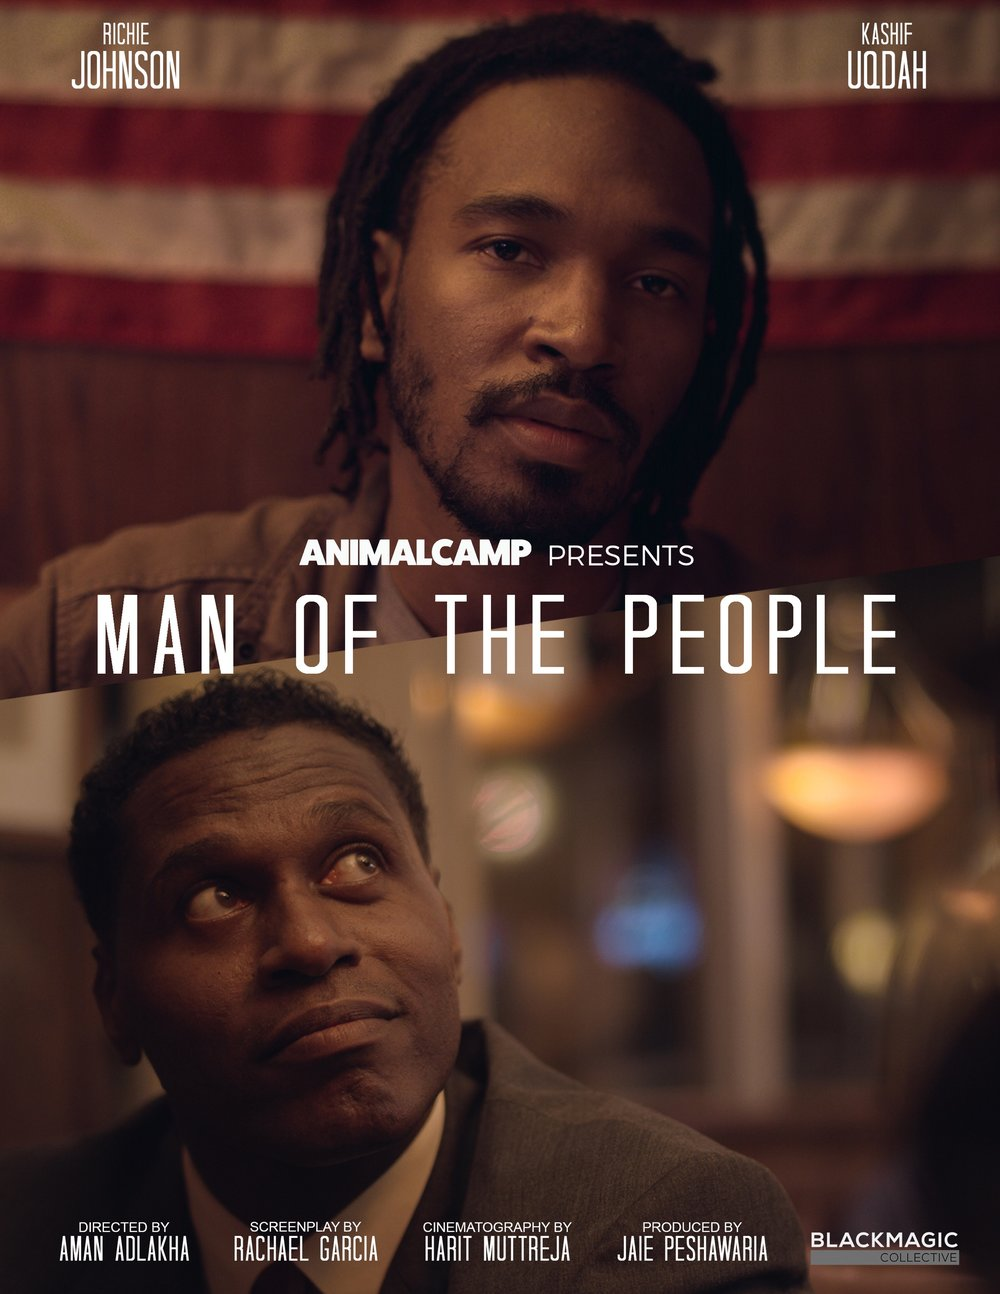 Man of the People - Two Brothers reunite after years estranged to reveal dark secrets about their past that could come to define their future.